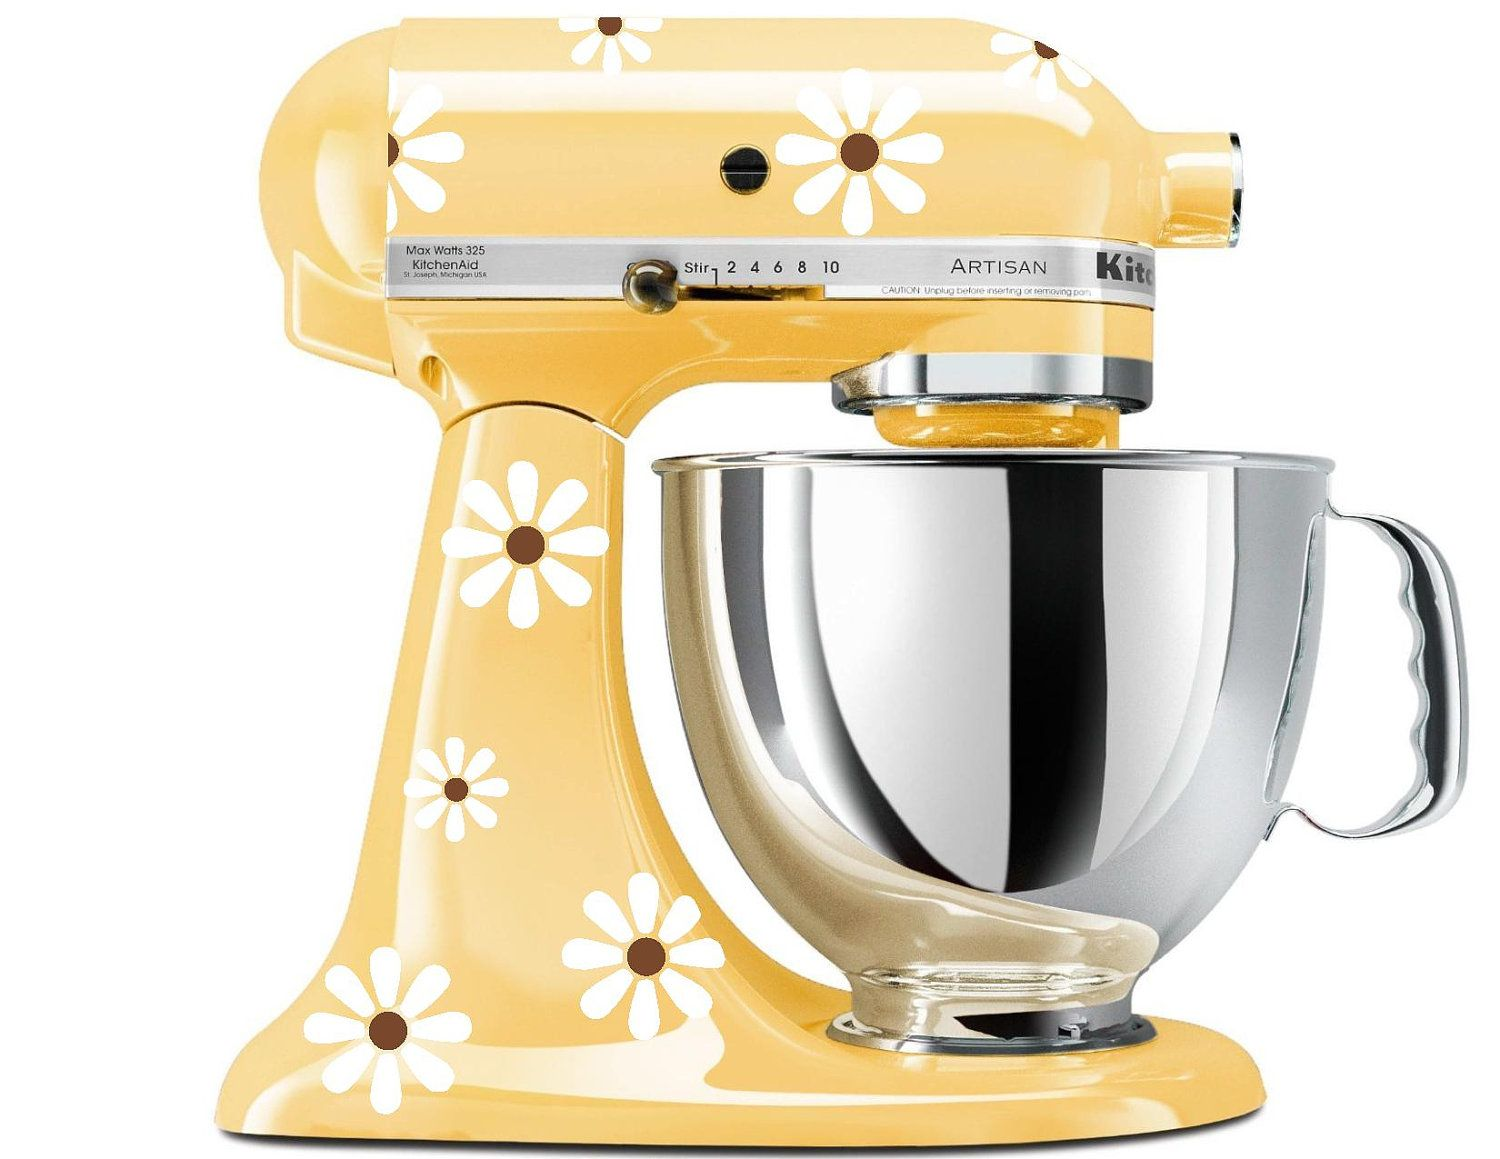 Kitchenaid Appliances Mixer Kitchenaid Stand Mixer Decal  Vinyl Sticker For Stand Up Mixer